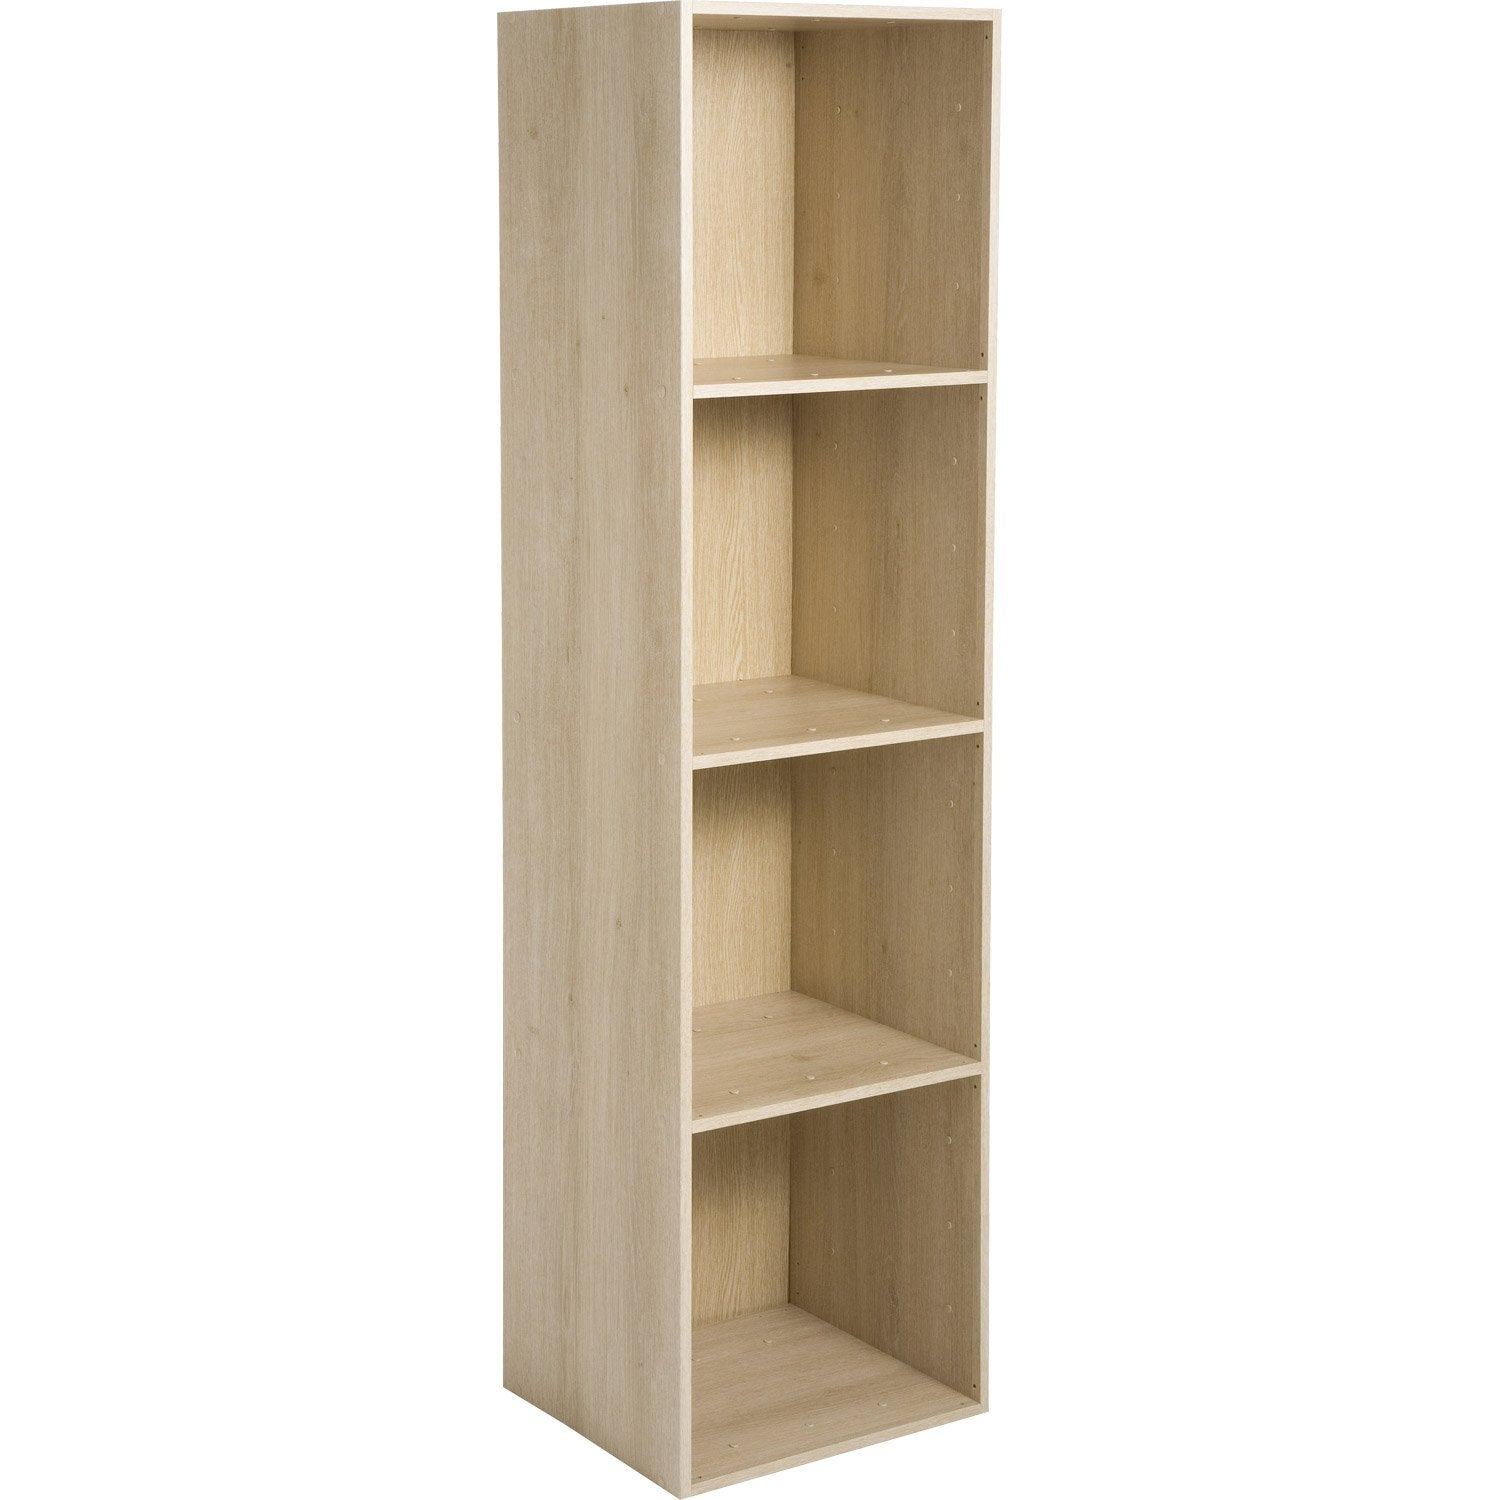 Etag re 4 cases multikaz effet ch ne x x p - Etagere modulable leroy merlin ...